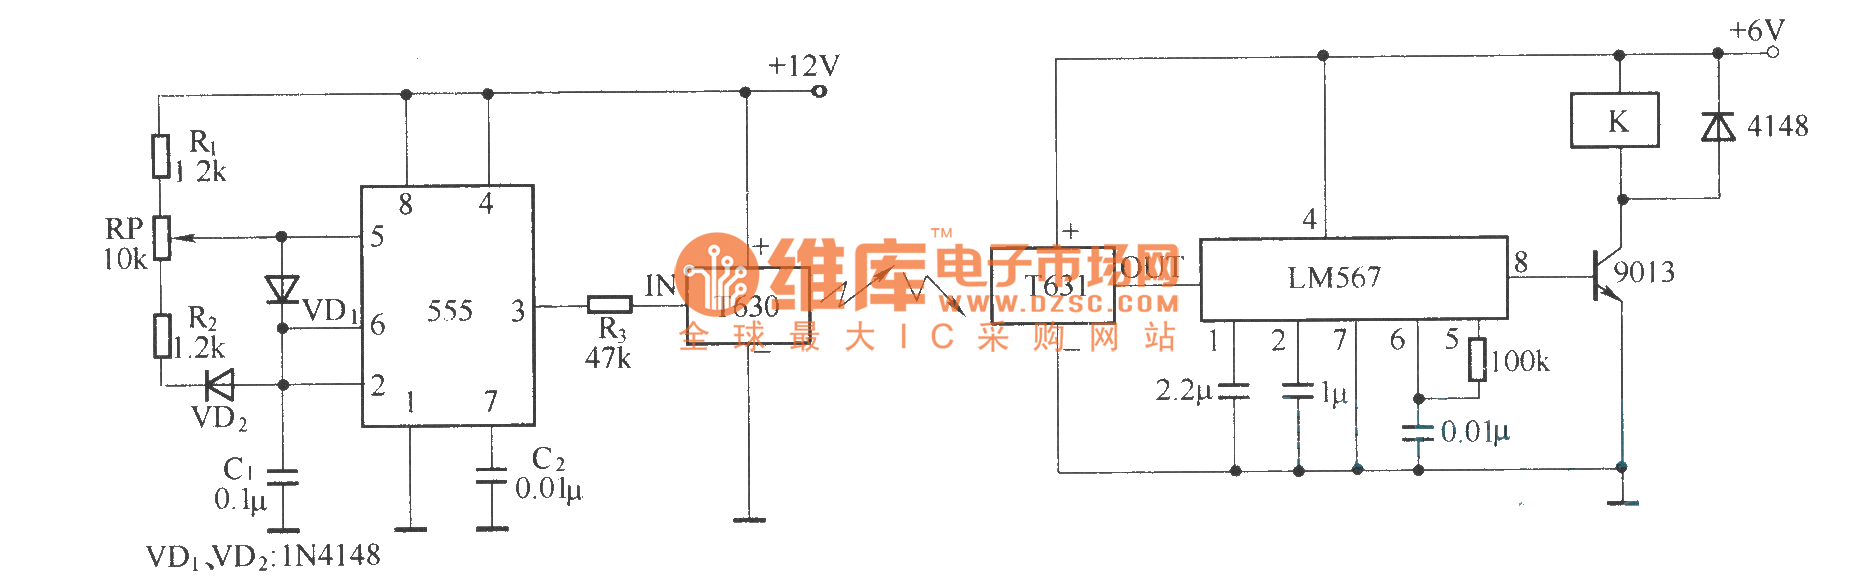 Composed Of T630 And T631 Wireless Mini Remote Control Circuit Diagram 1 Remotecontrolcircuit Seekic